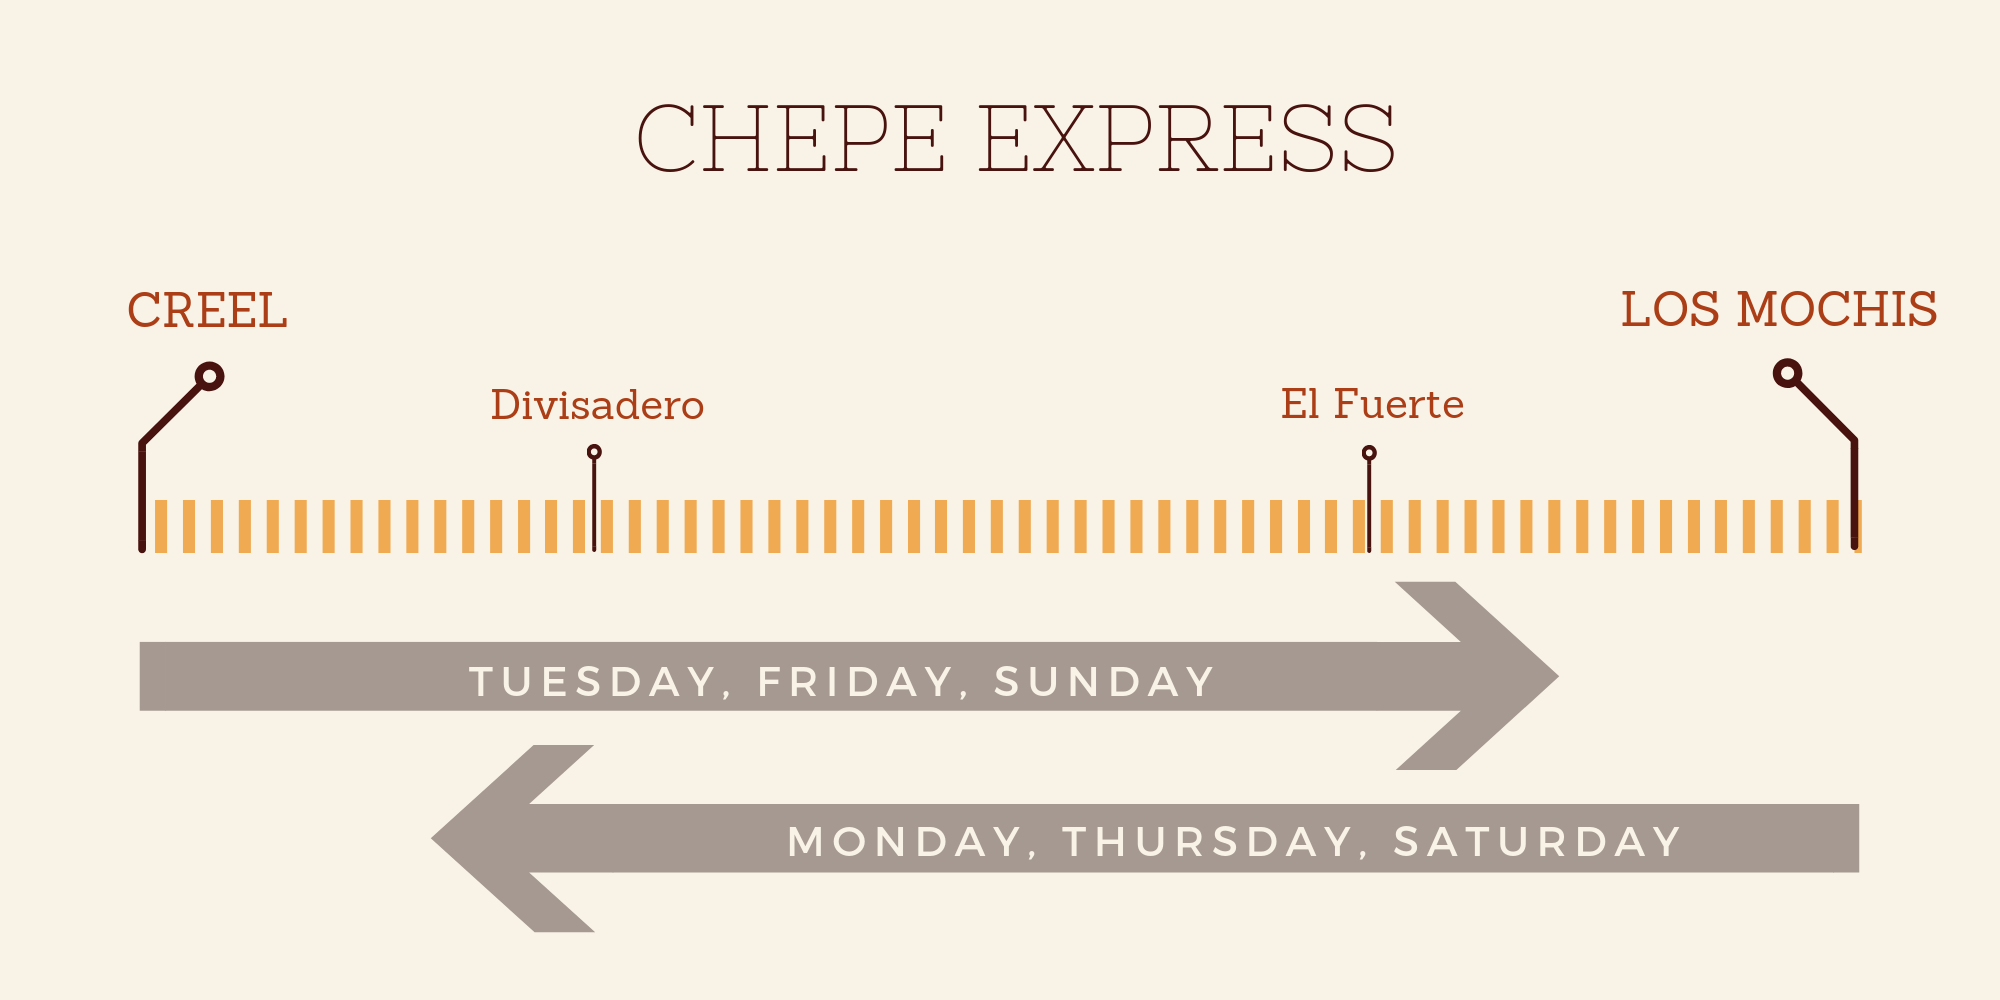 Copper Canyon Train - Chepe Express Schedule